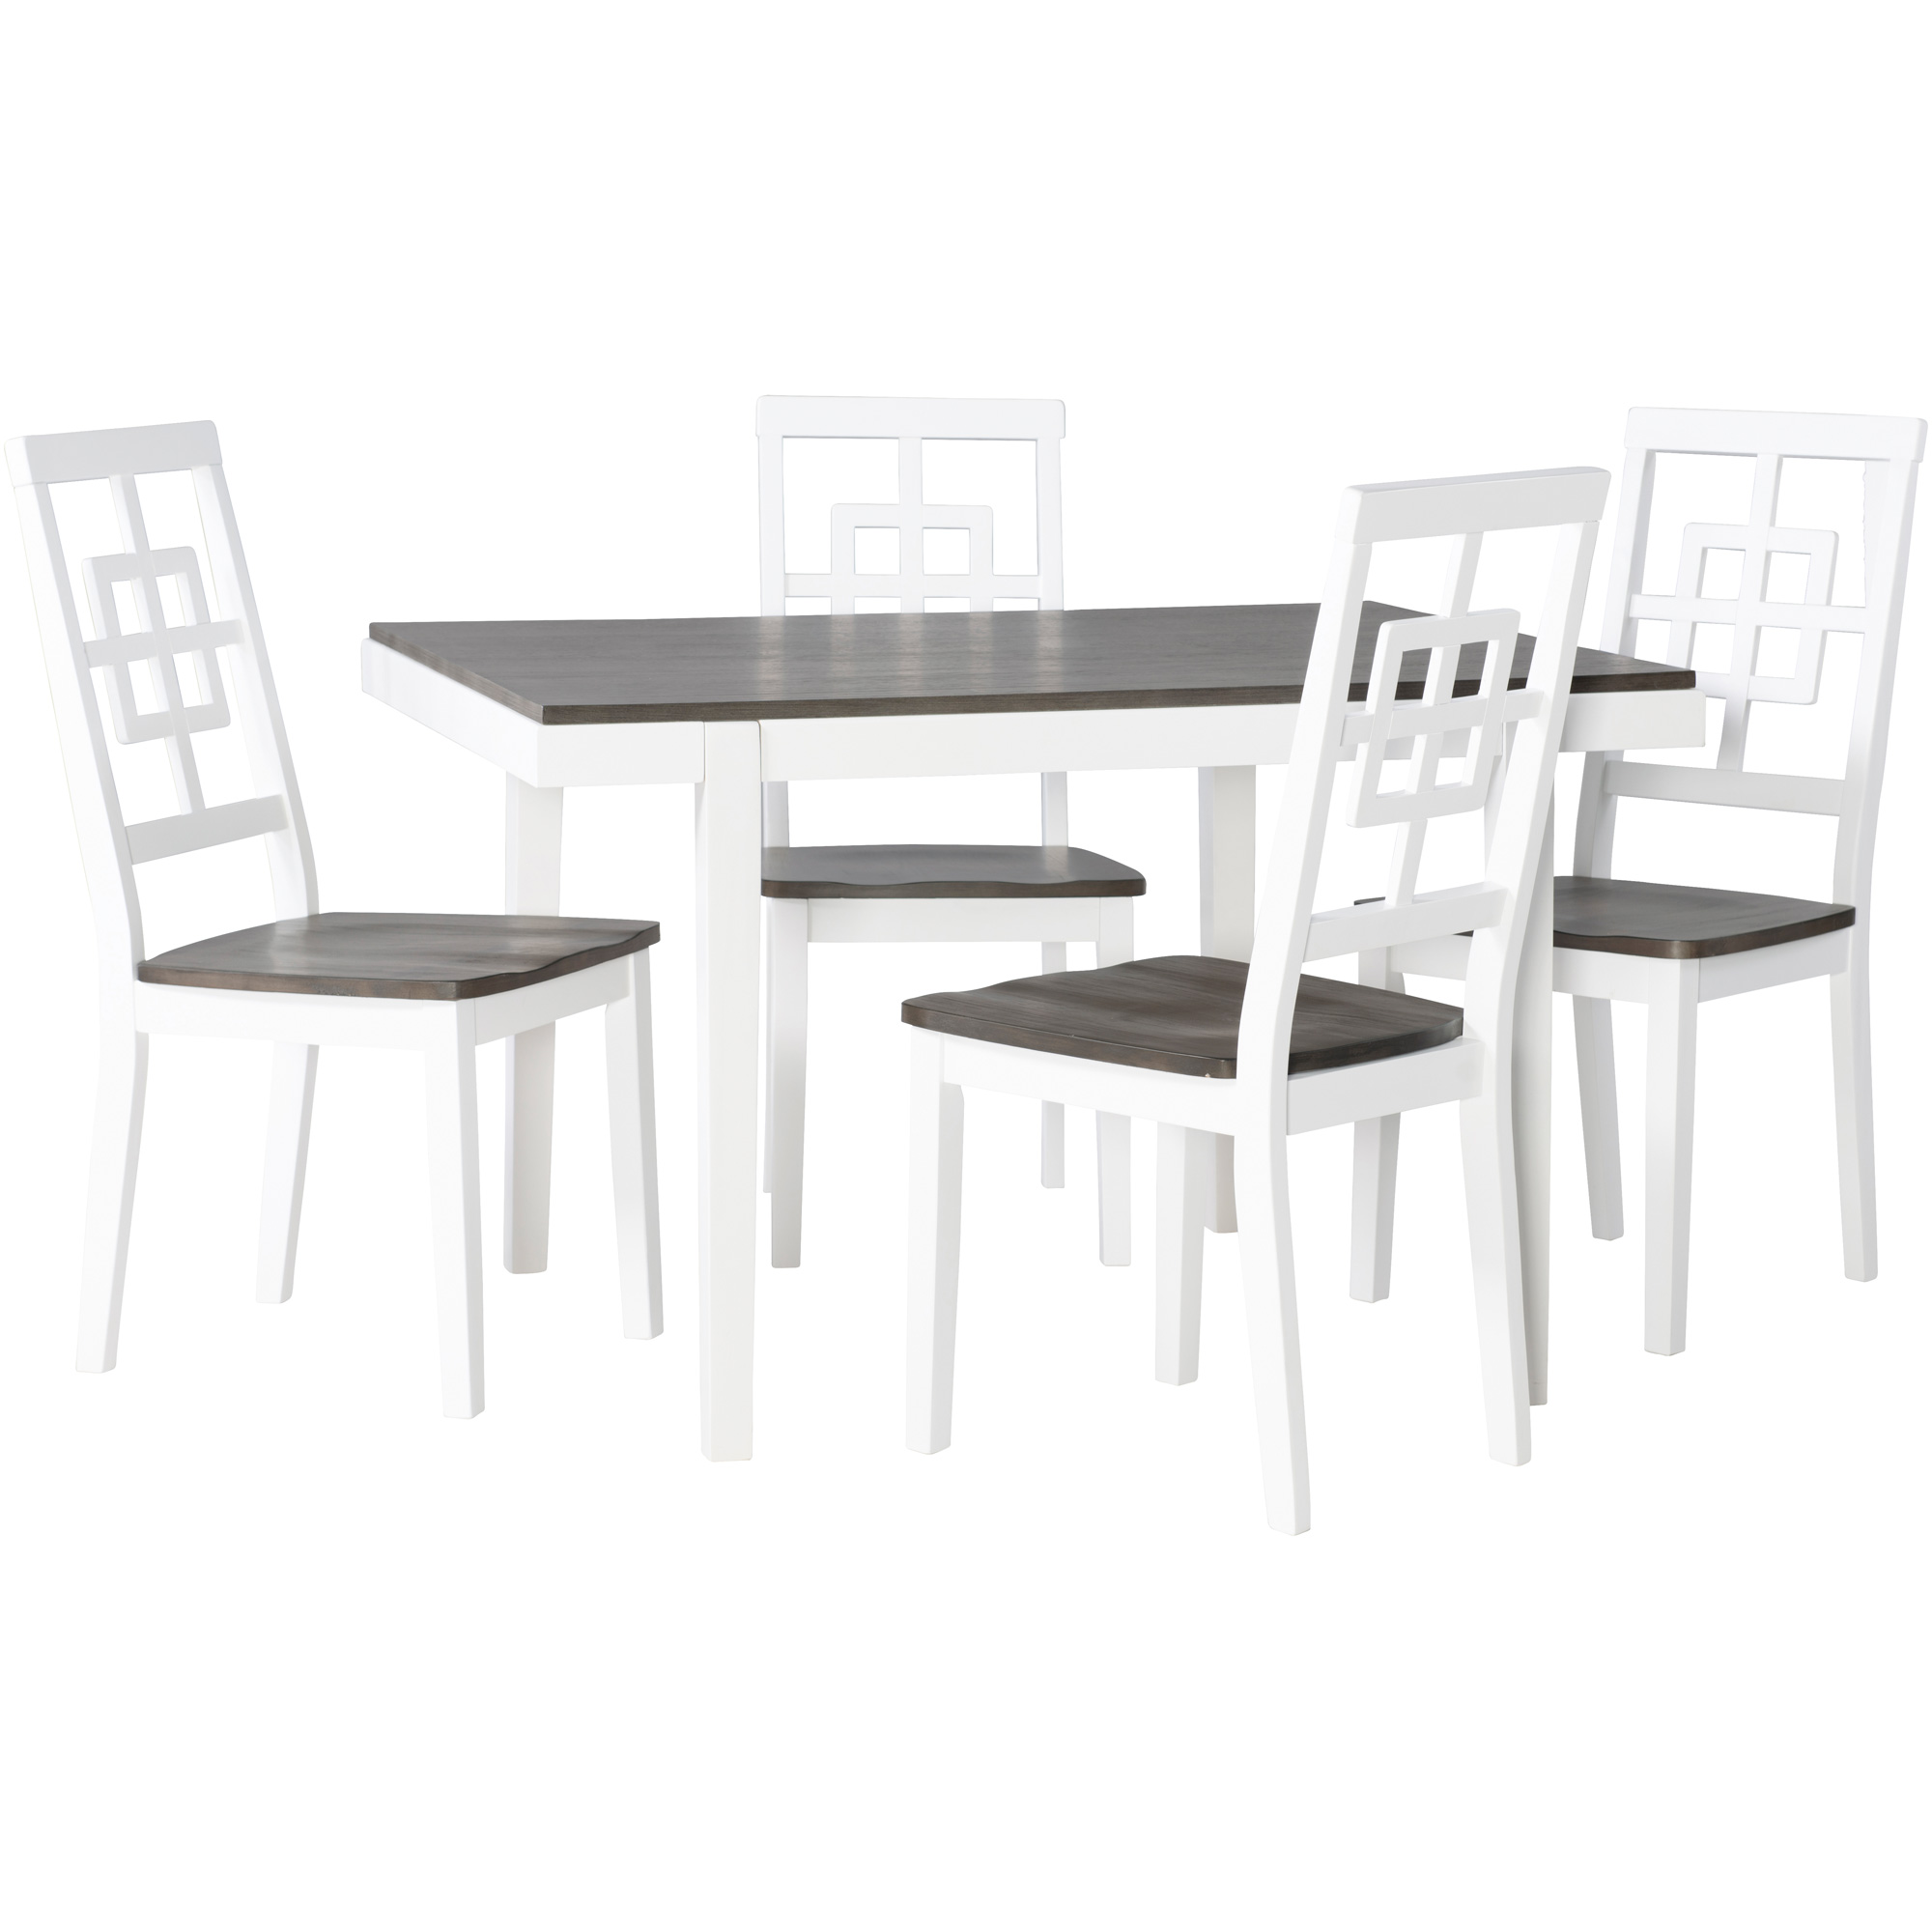 Powell | Lehigh Gray and White 5 Piece Dining Set